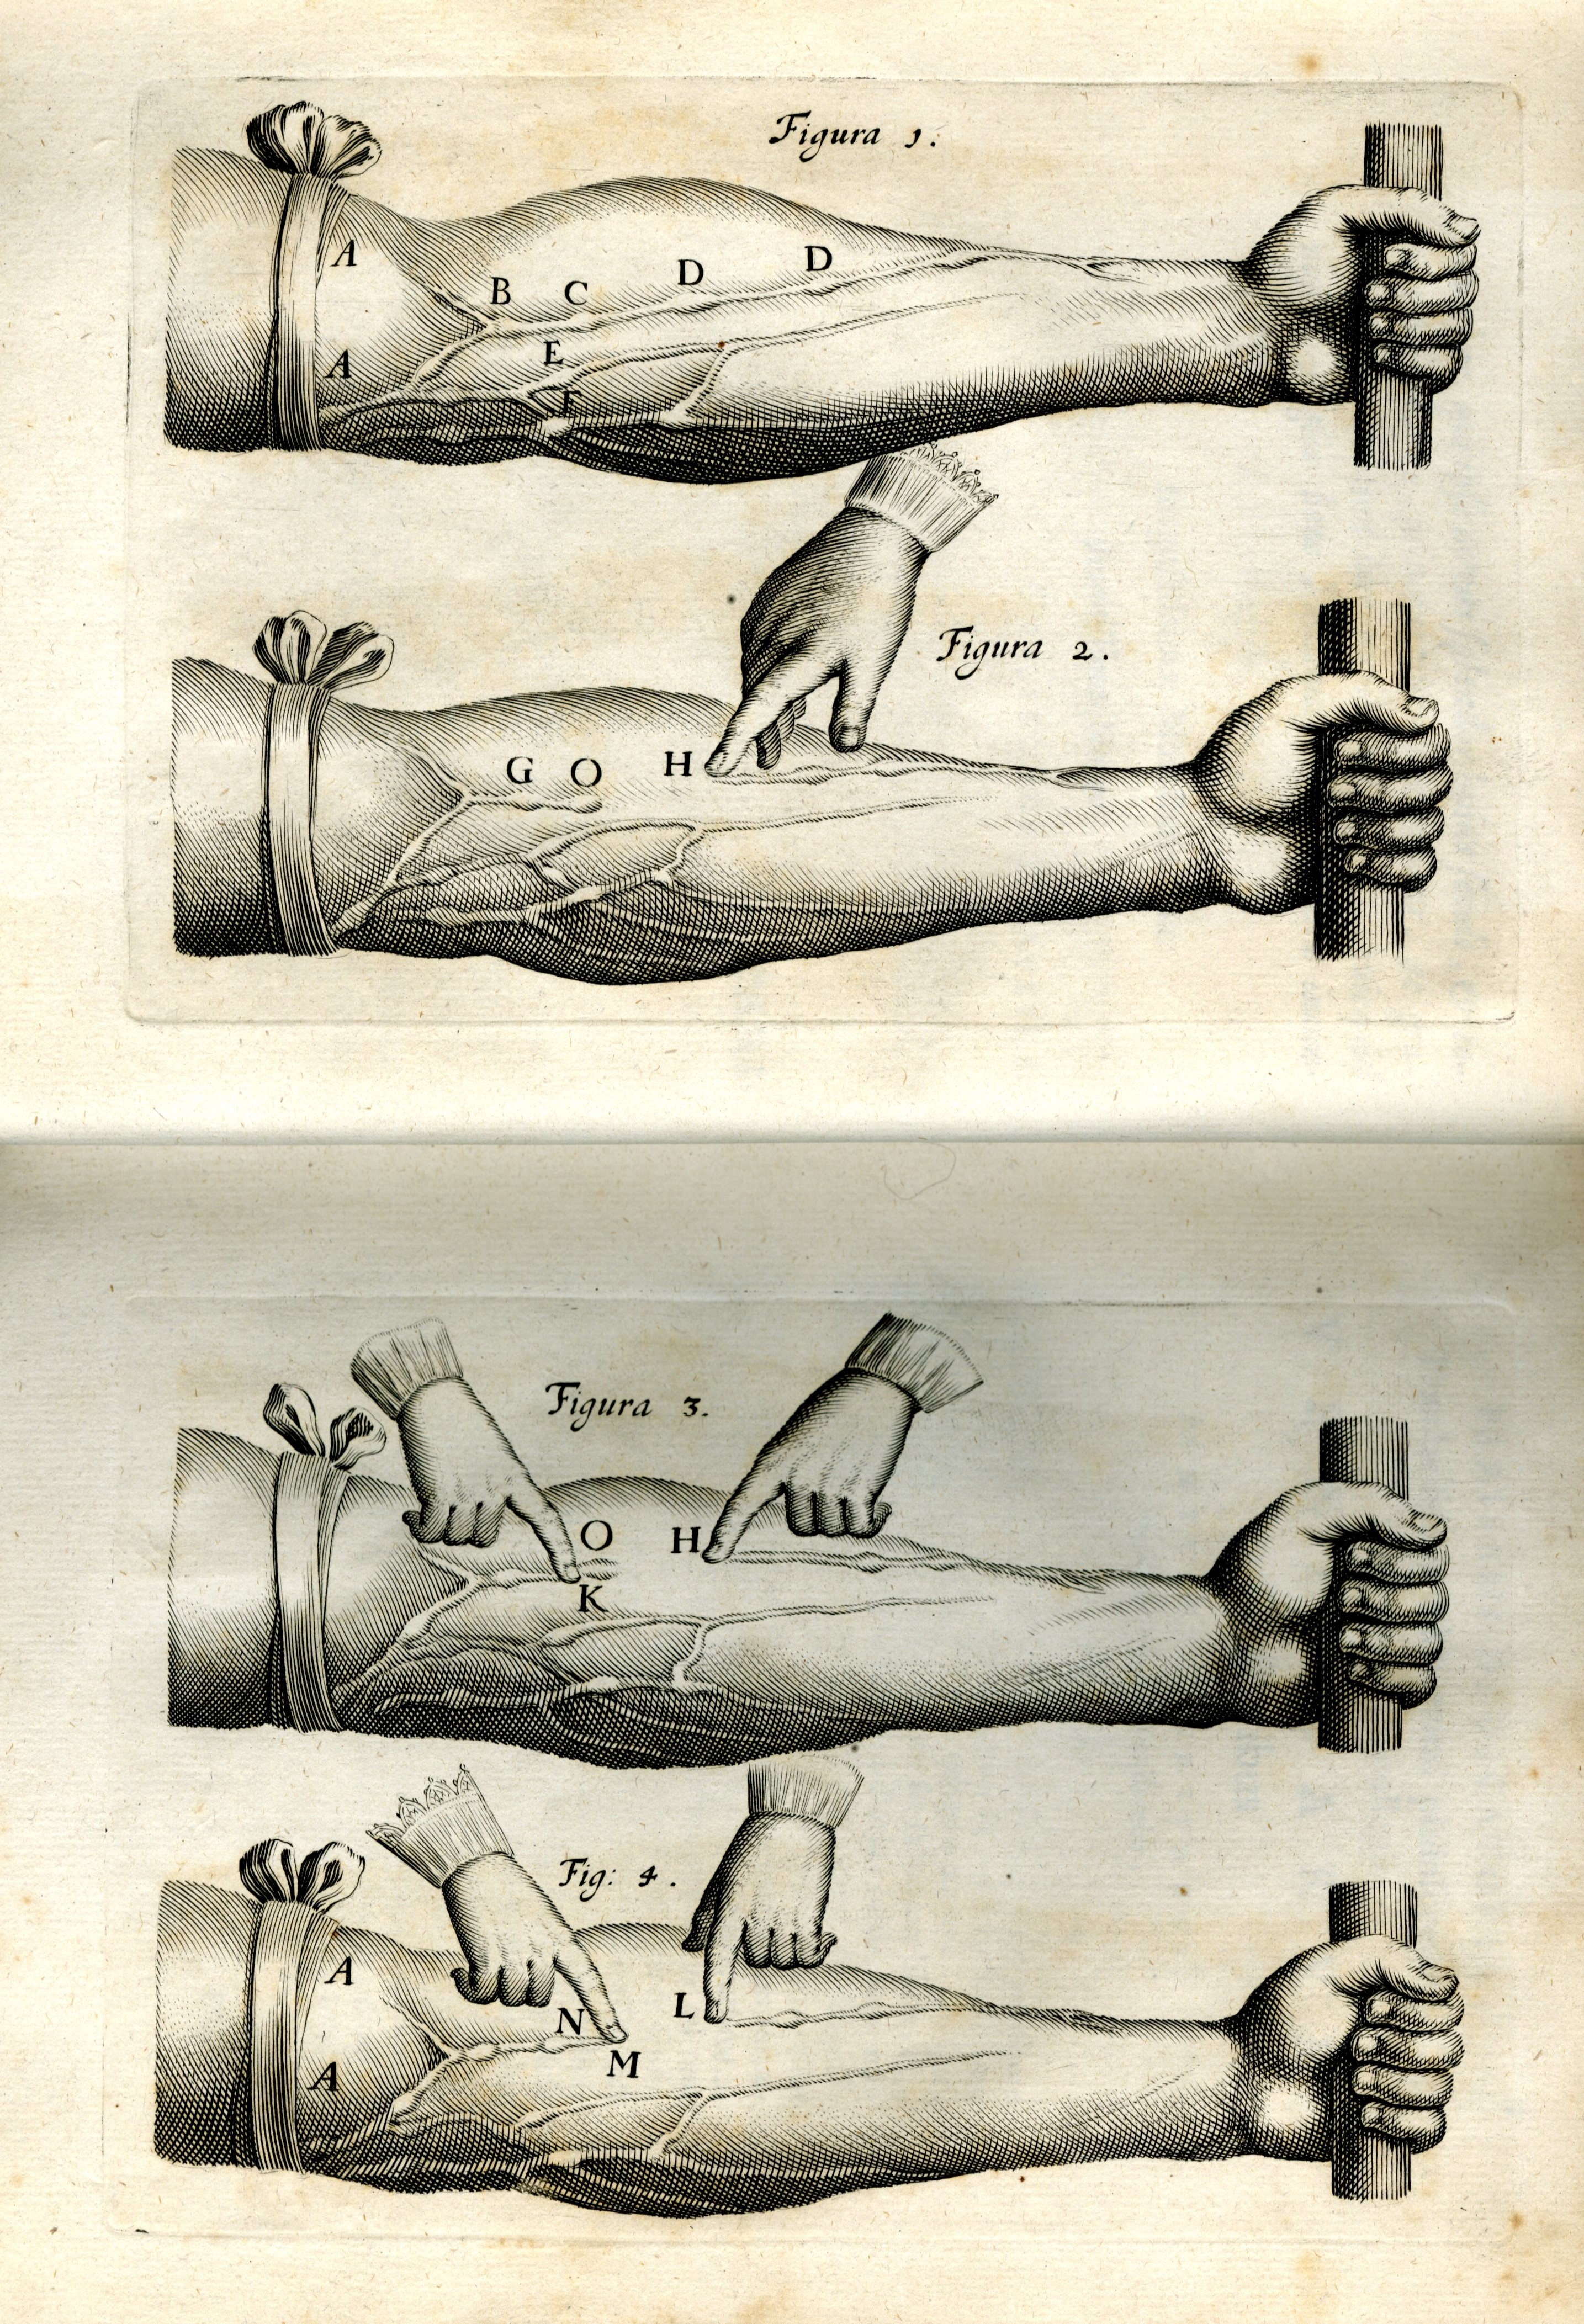 Historical Images - Medical Images - Research Guides at University ...